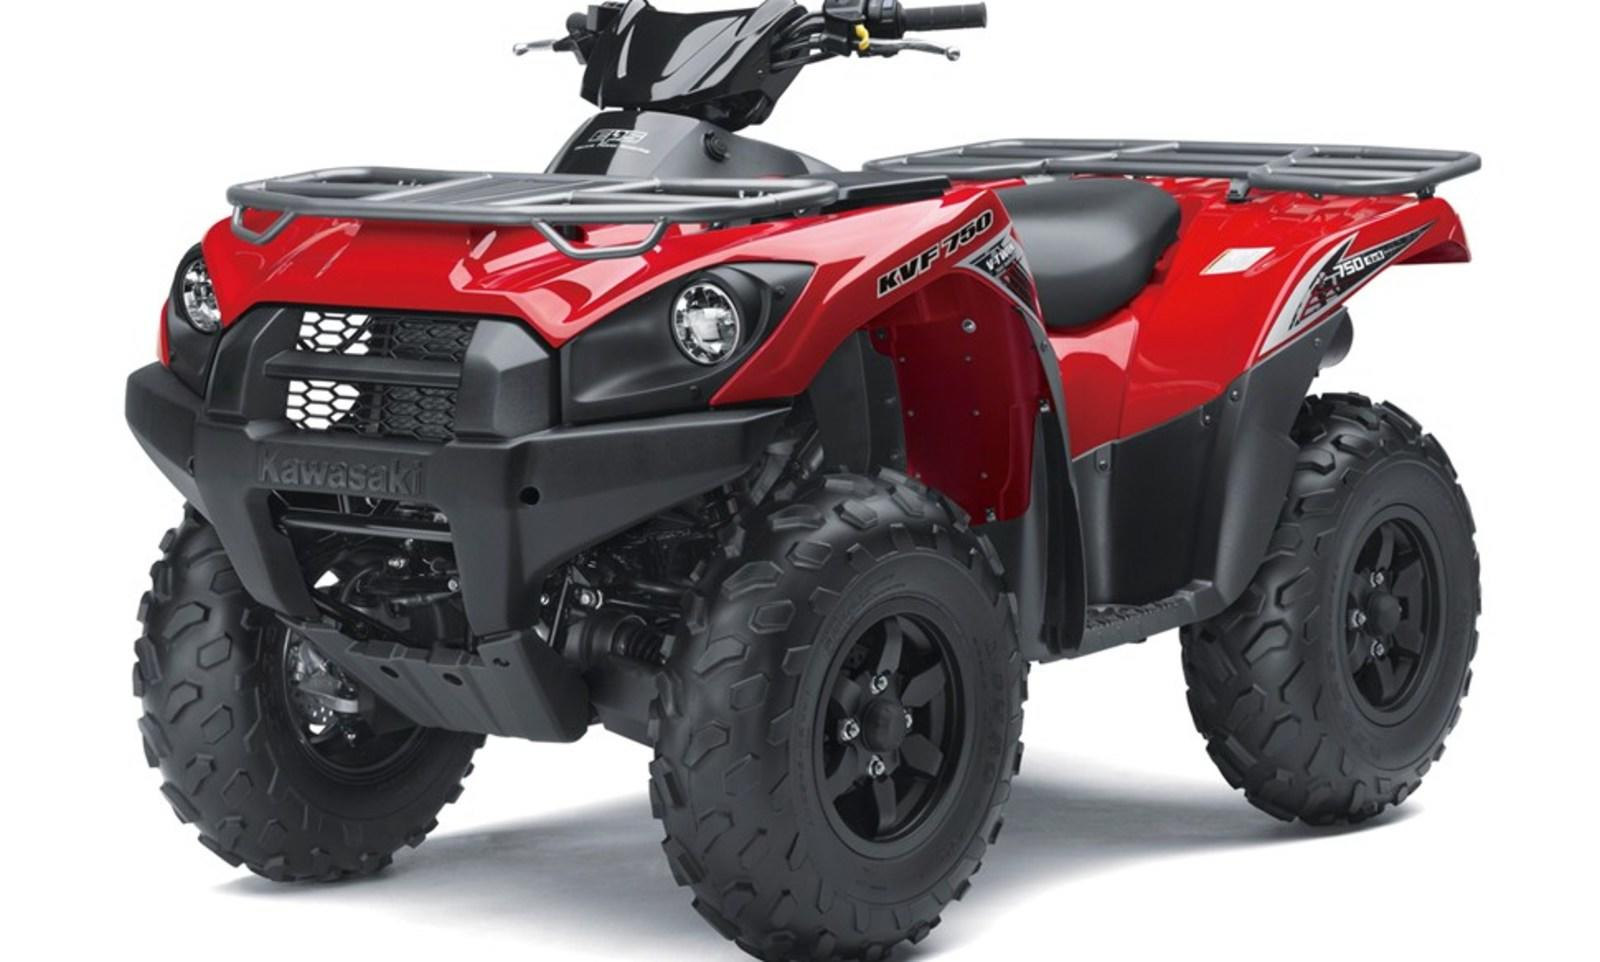 2013 kawasaki kvf750 4x4 eps review top speed. Black Bedroom Furniture Sets. Home Design Ideas